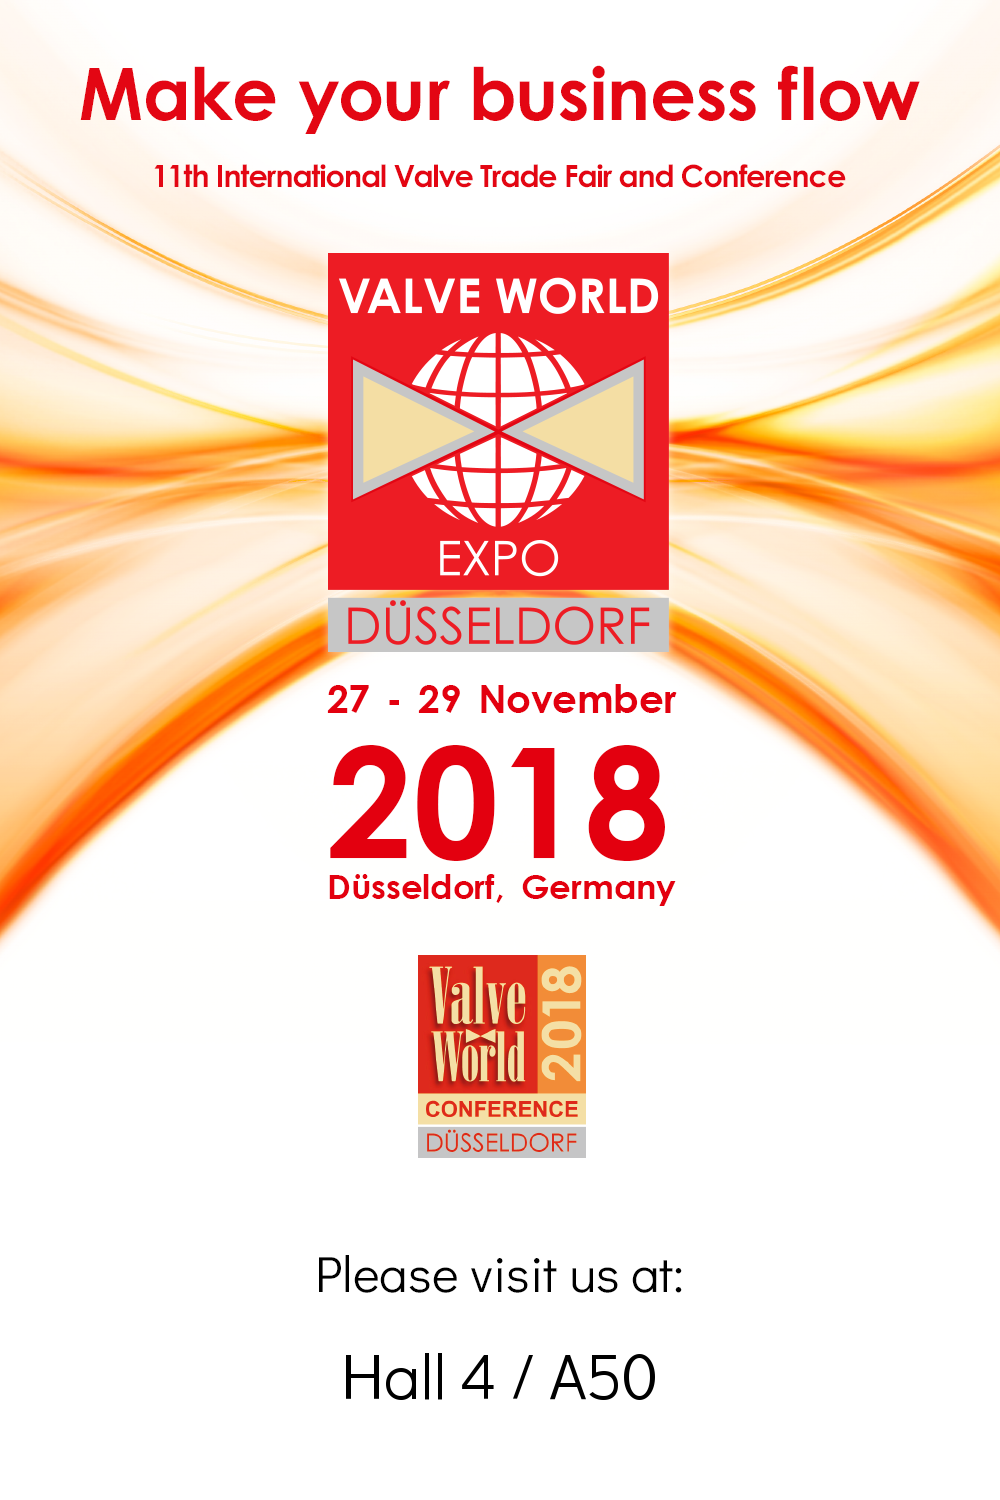 We are exhibiting at Valve World 2018